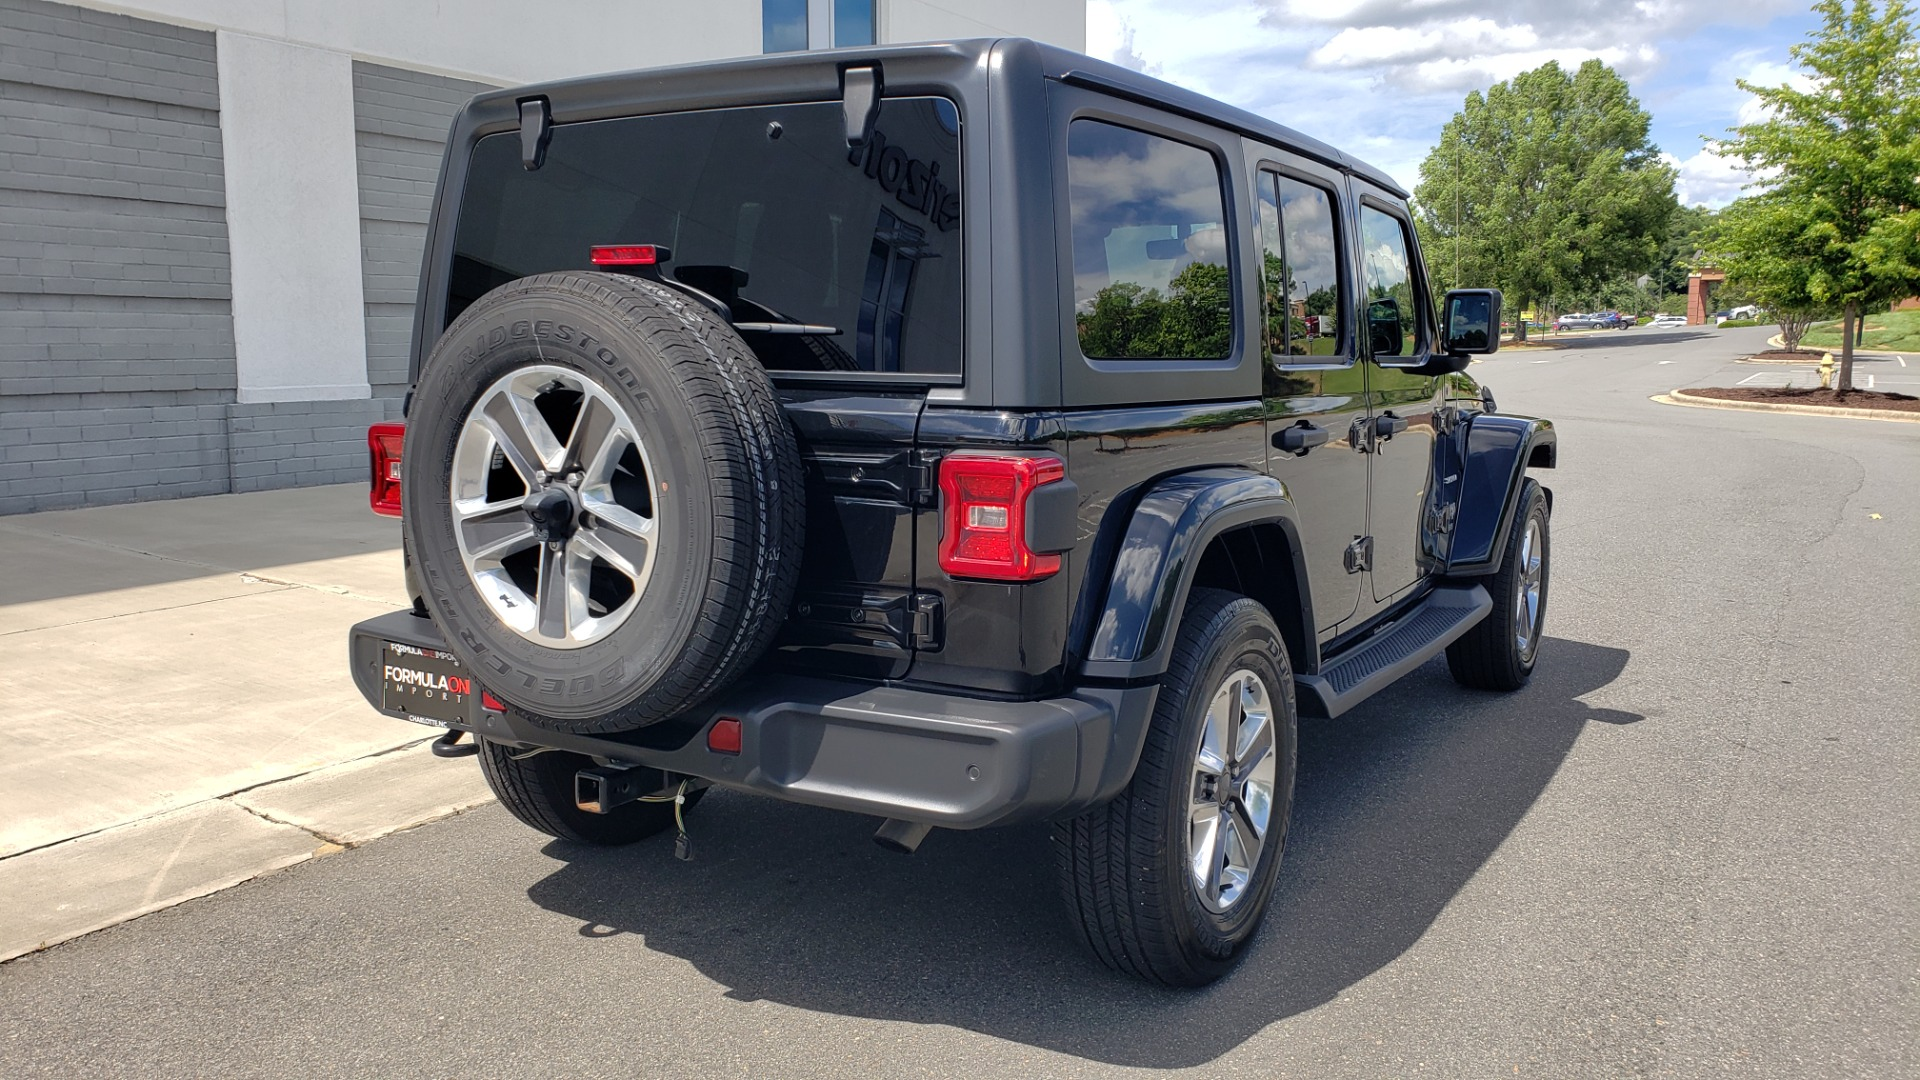 Used 2018 Jeep WRANGLER UNLIMITED SAHARA / 3.6L V6 / 6-SPD MAN / ALPINE / NAV / HTD STS / REARVIEW for sale $43,999 at Formula Imports in Charlotte NC 28227 2